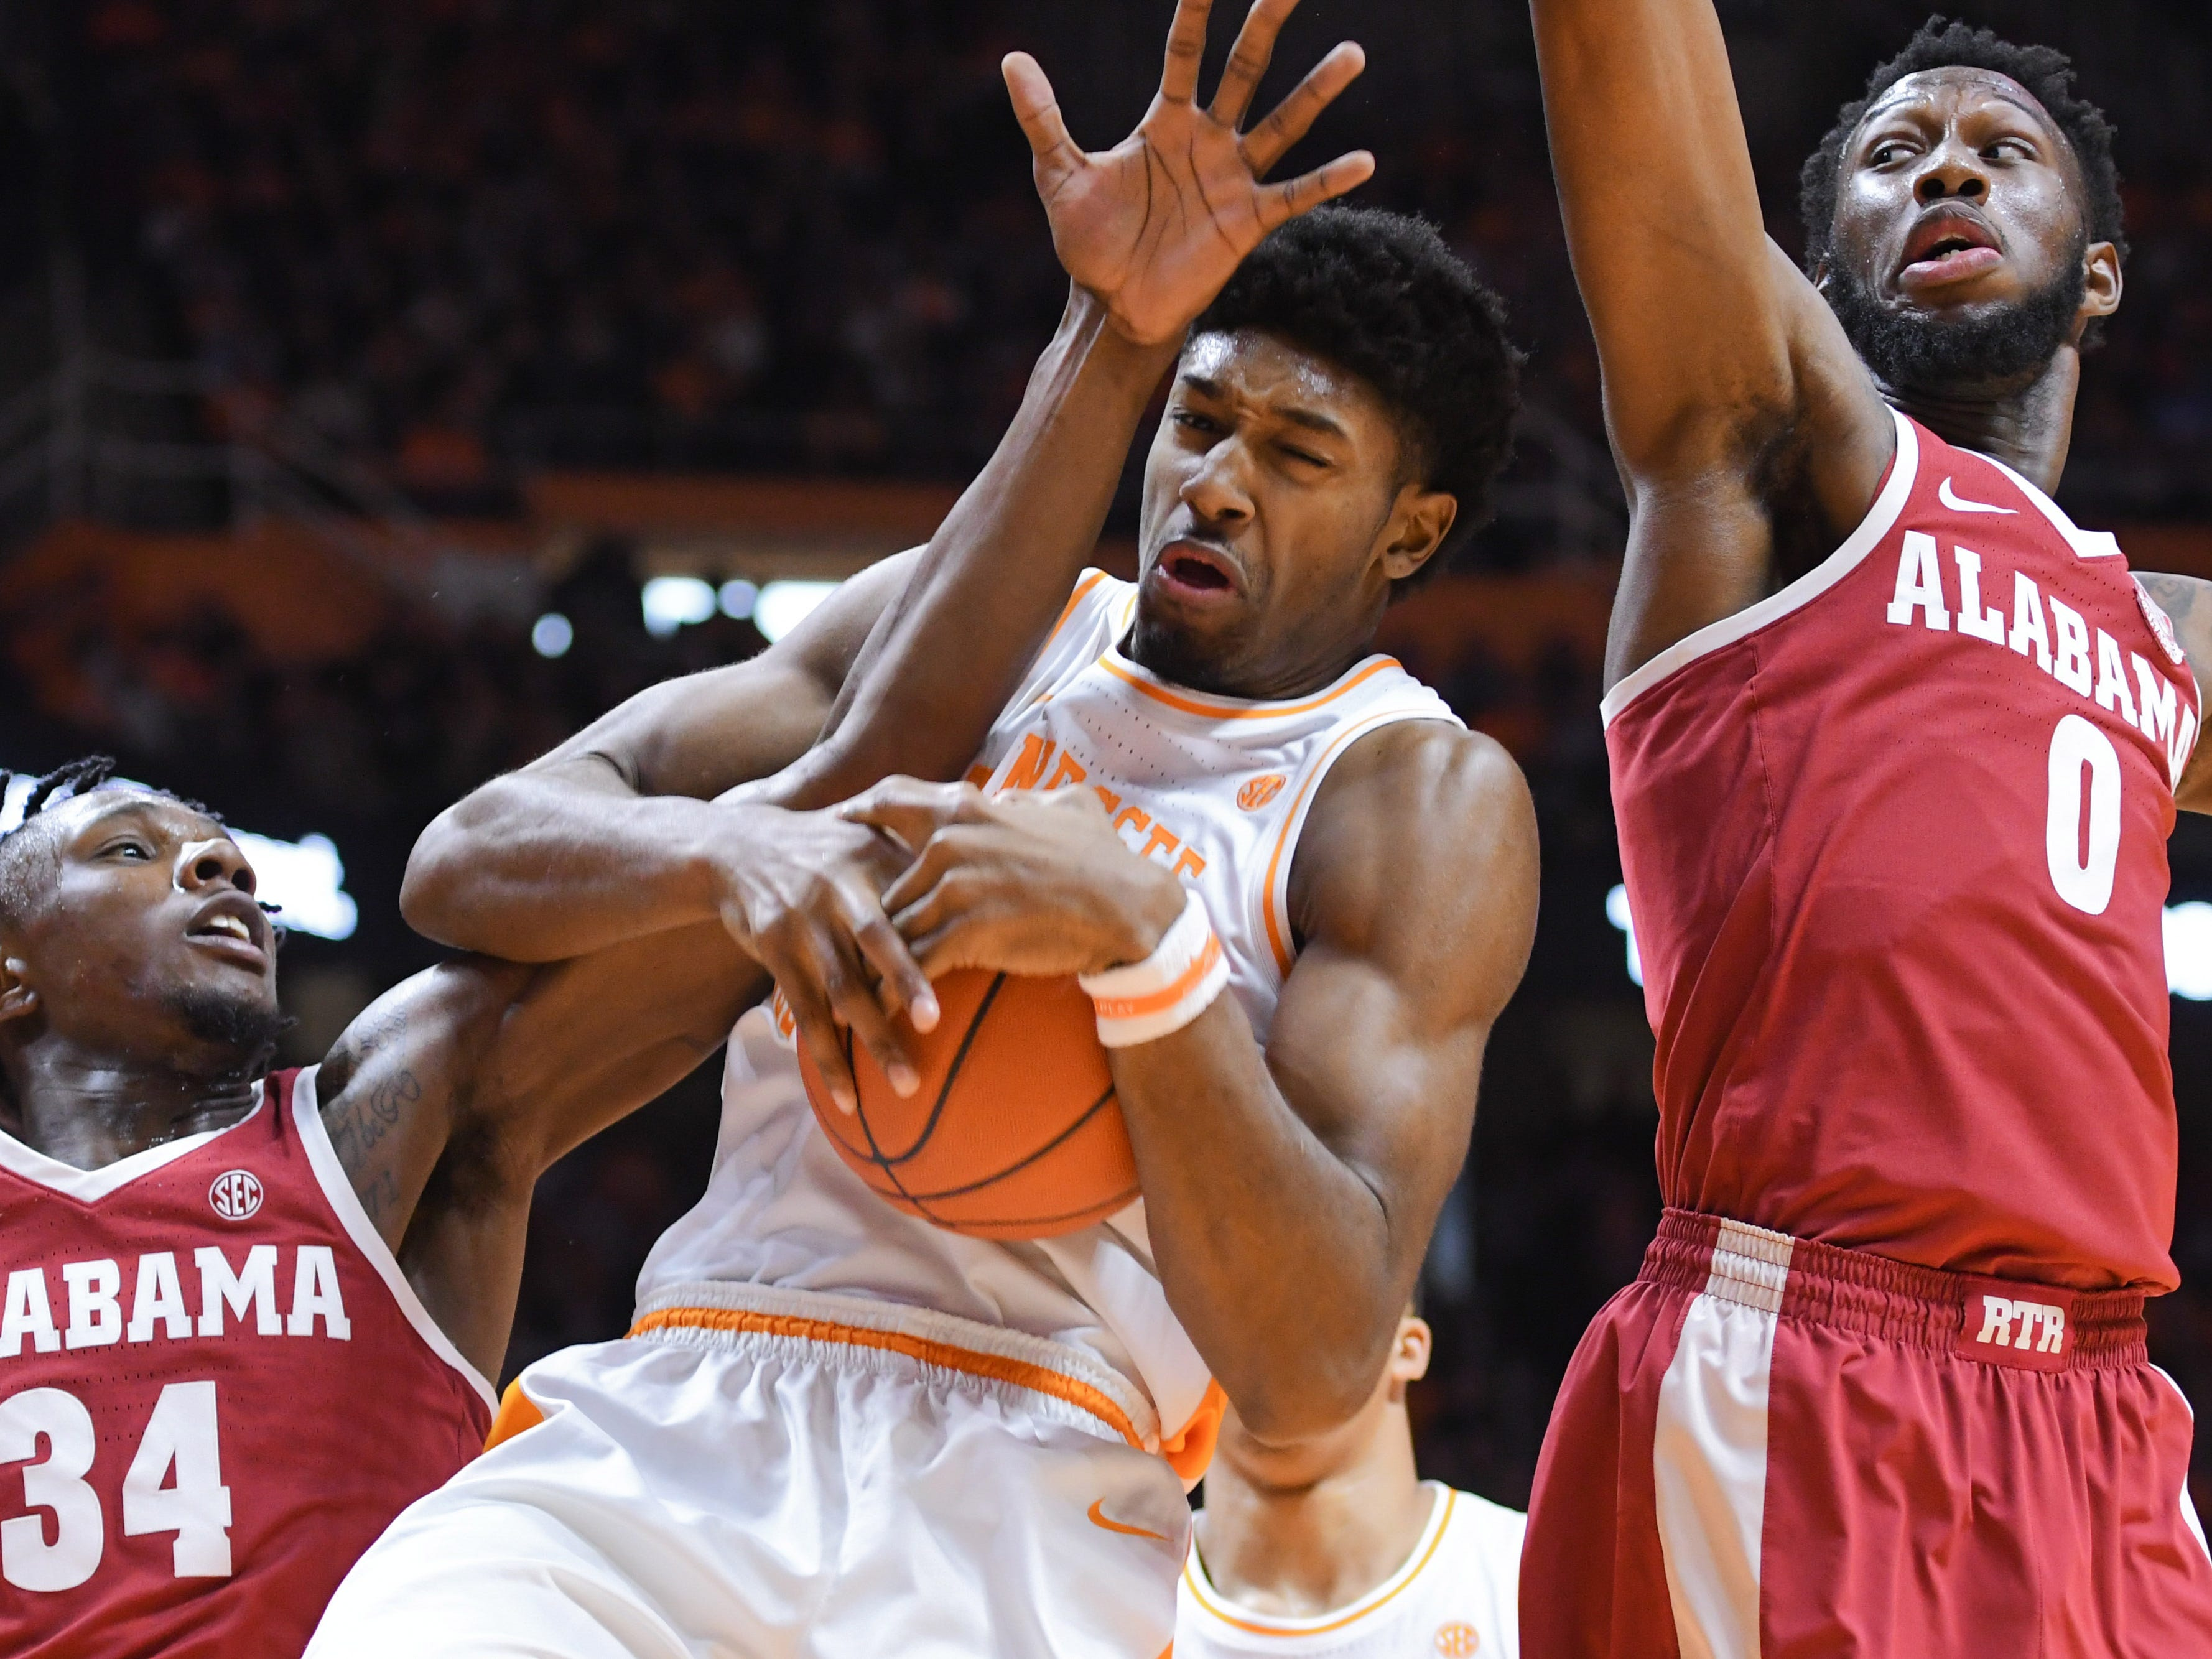 Alabama Crimson Tide guard Tevin Mack (34) and forward Donta Hall (0) battle Tennessee Volunteers forward Kyle Alexander (11) for a rebound during the first half at Thompson-Boling Arena.